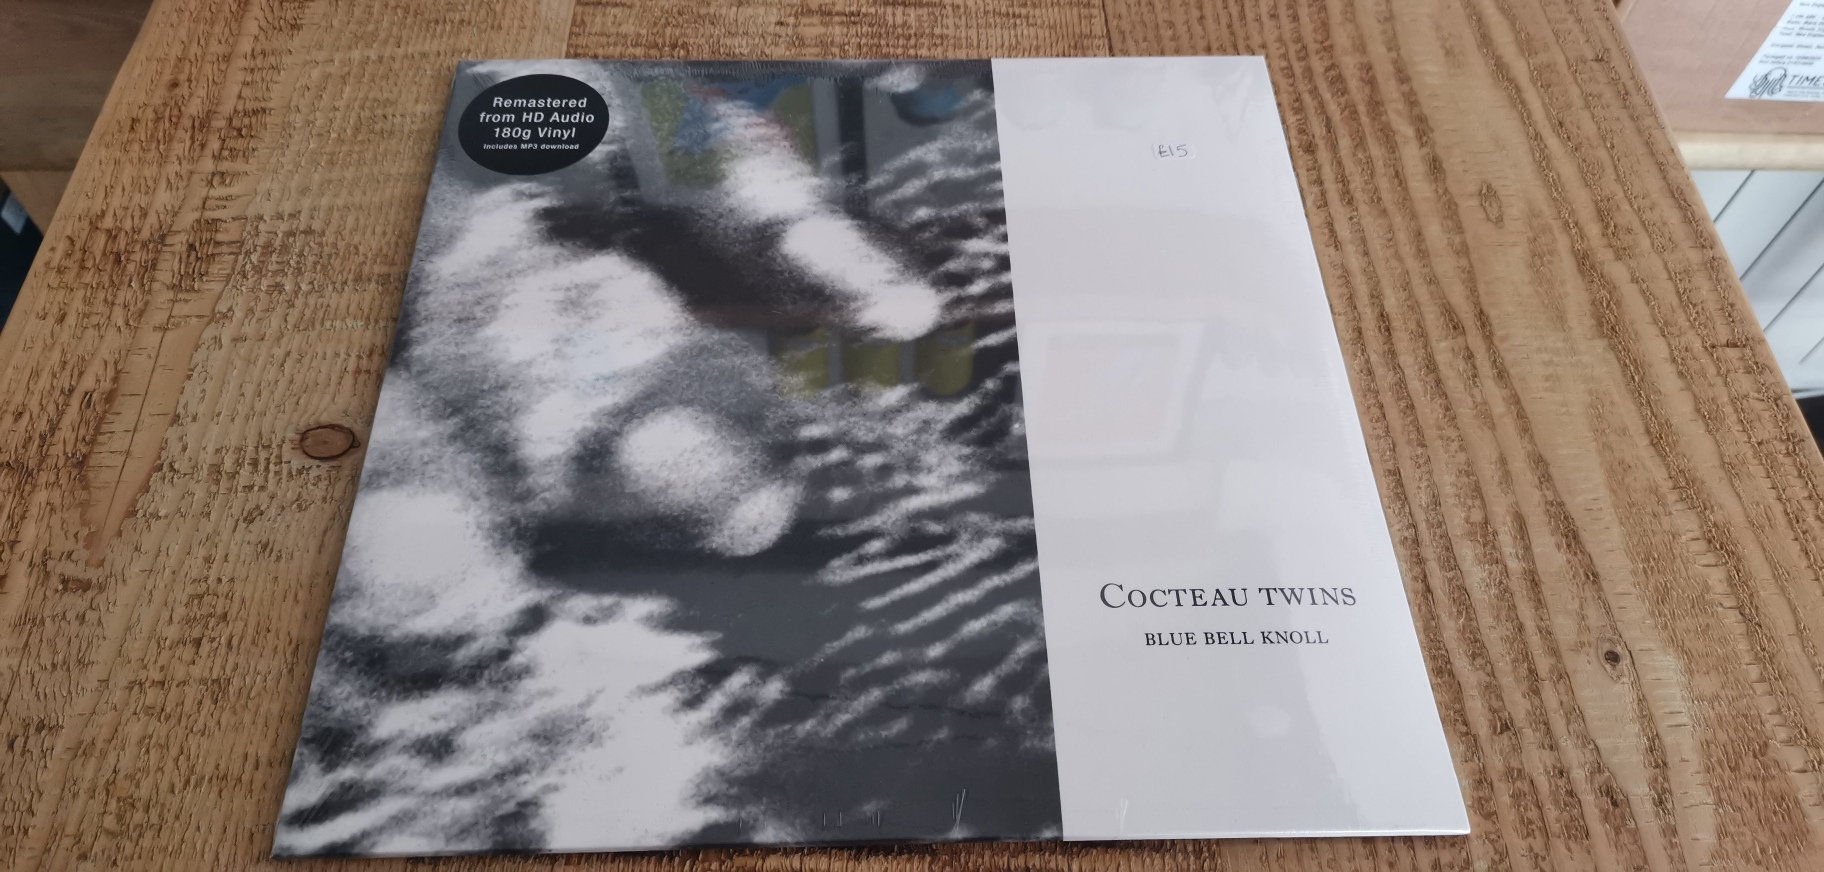 Cocteau Twins - Blue Bell Knoll (Remastered from HD Audio)